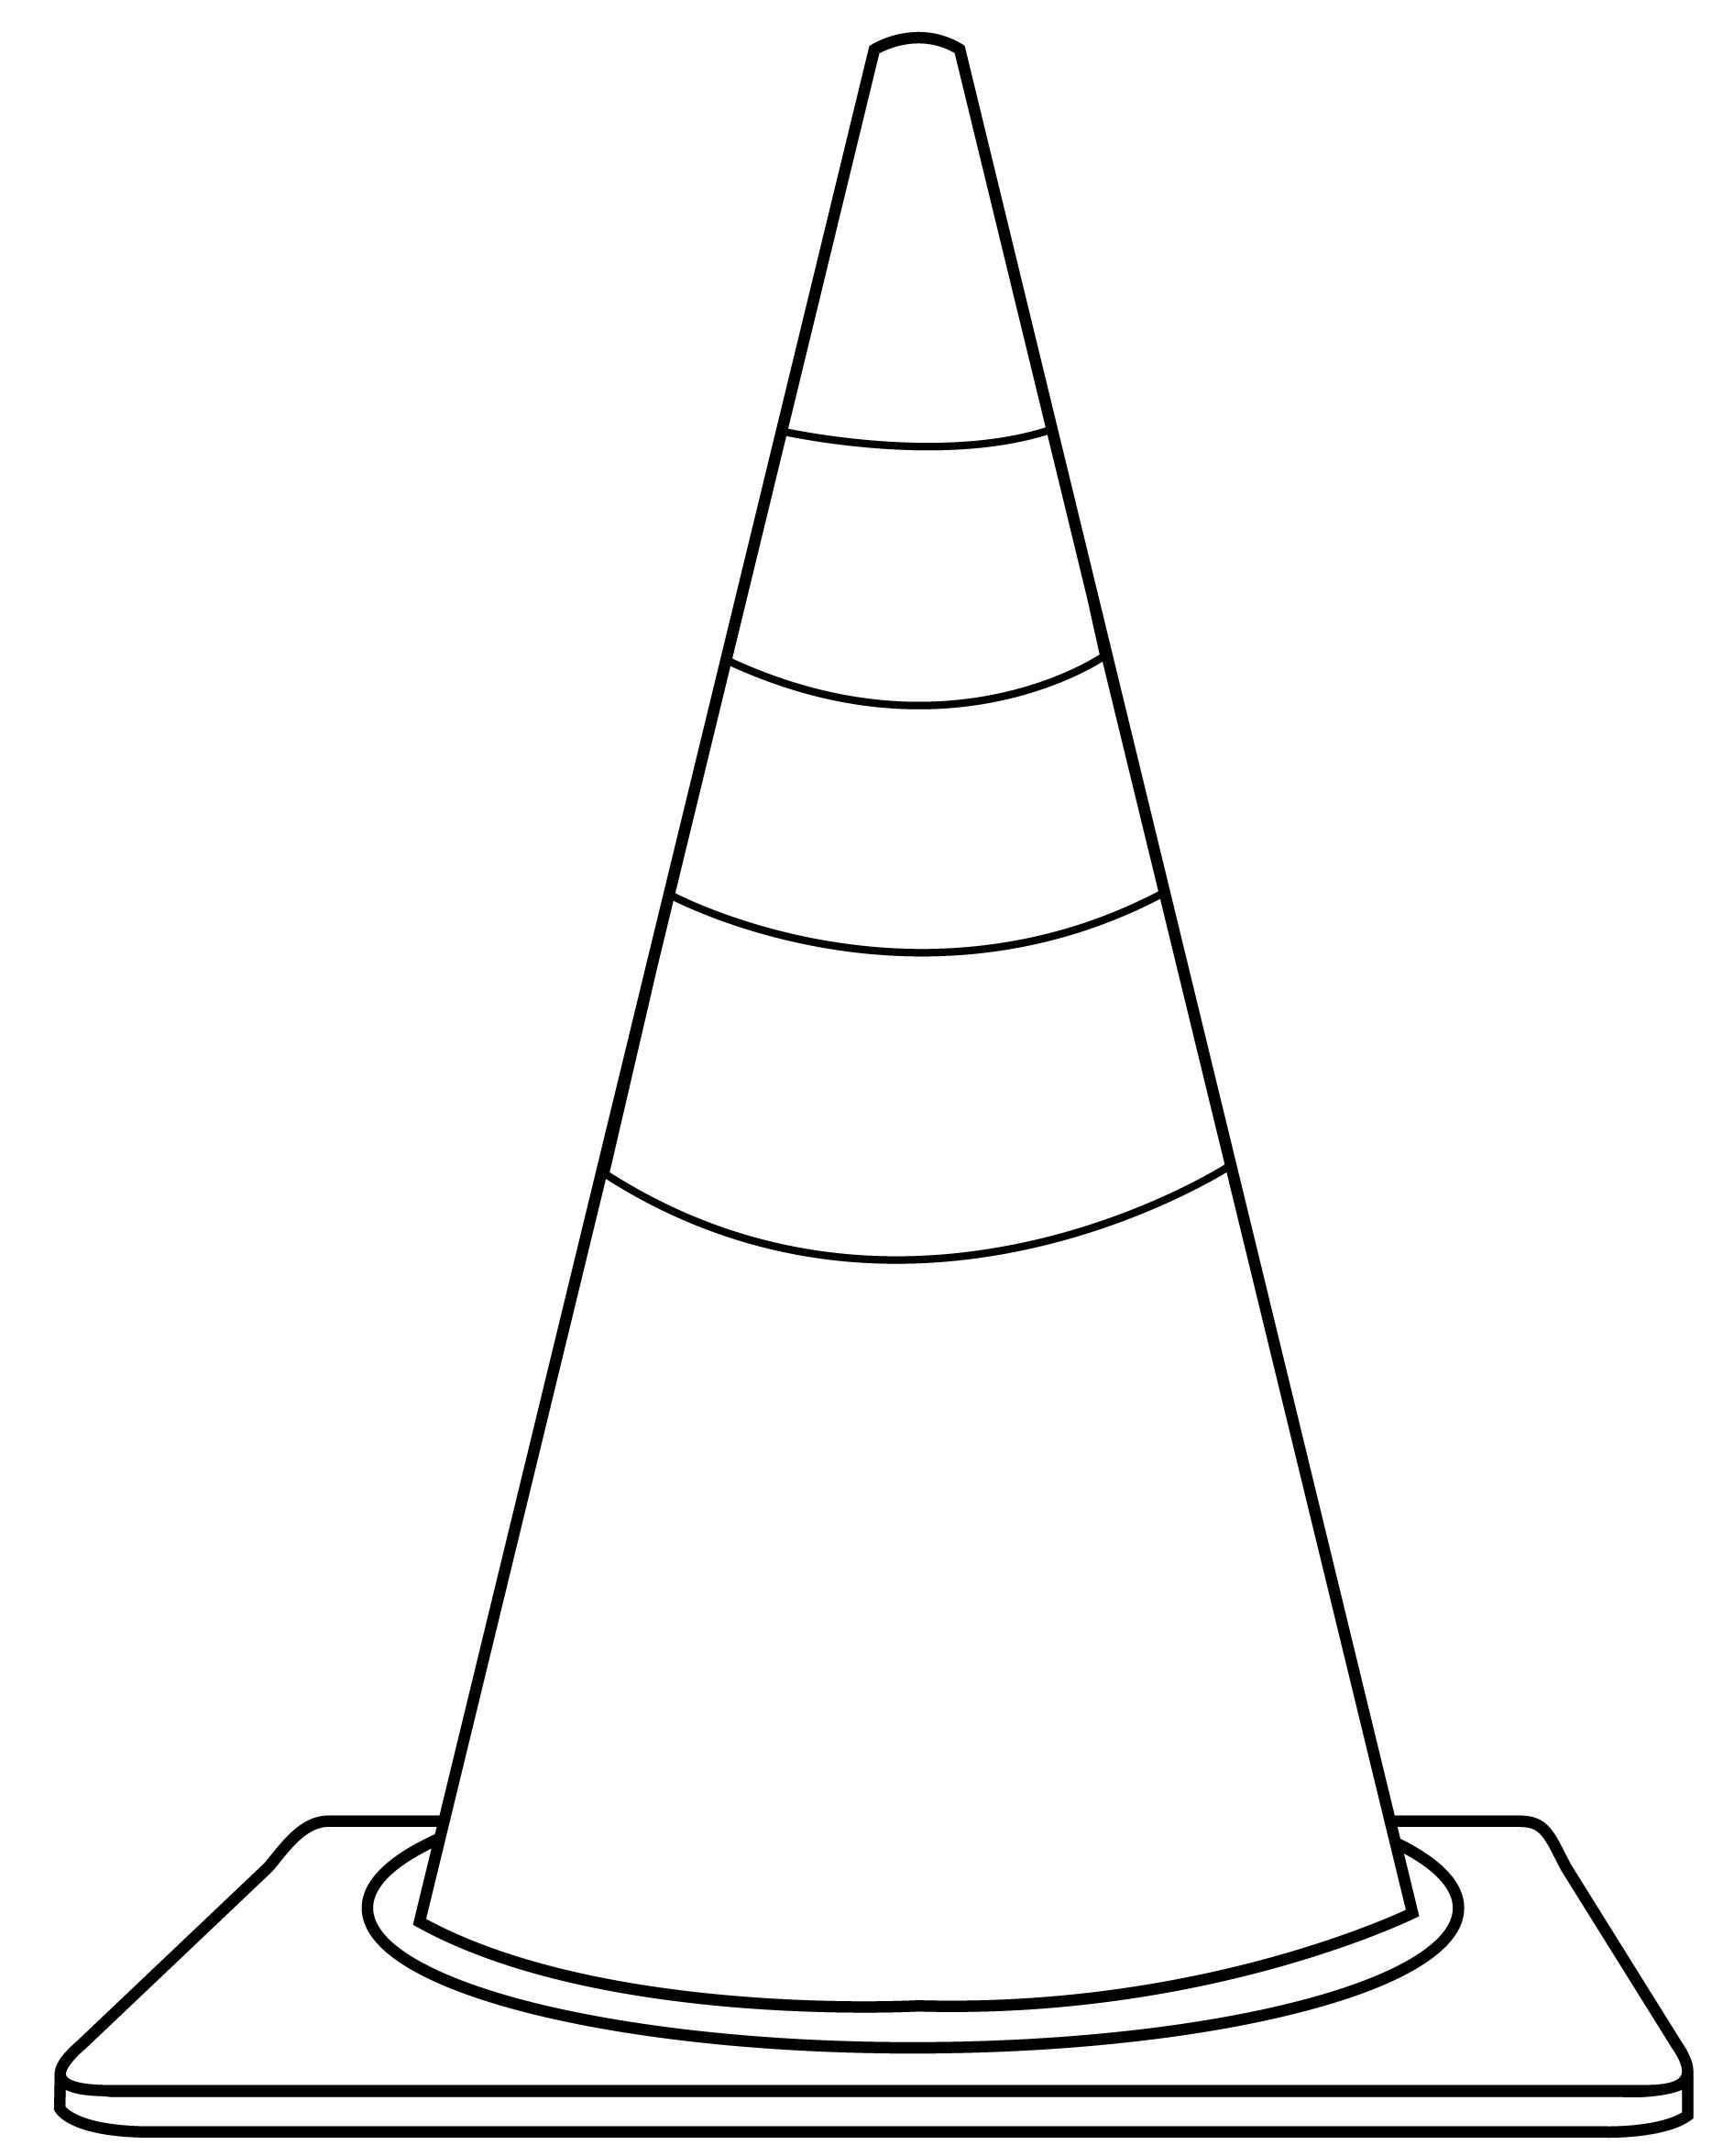 Traffic Cone Clip Art Black and White Construction crafts Construction theme Cone template